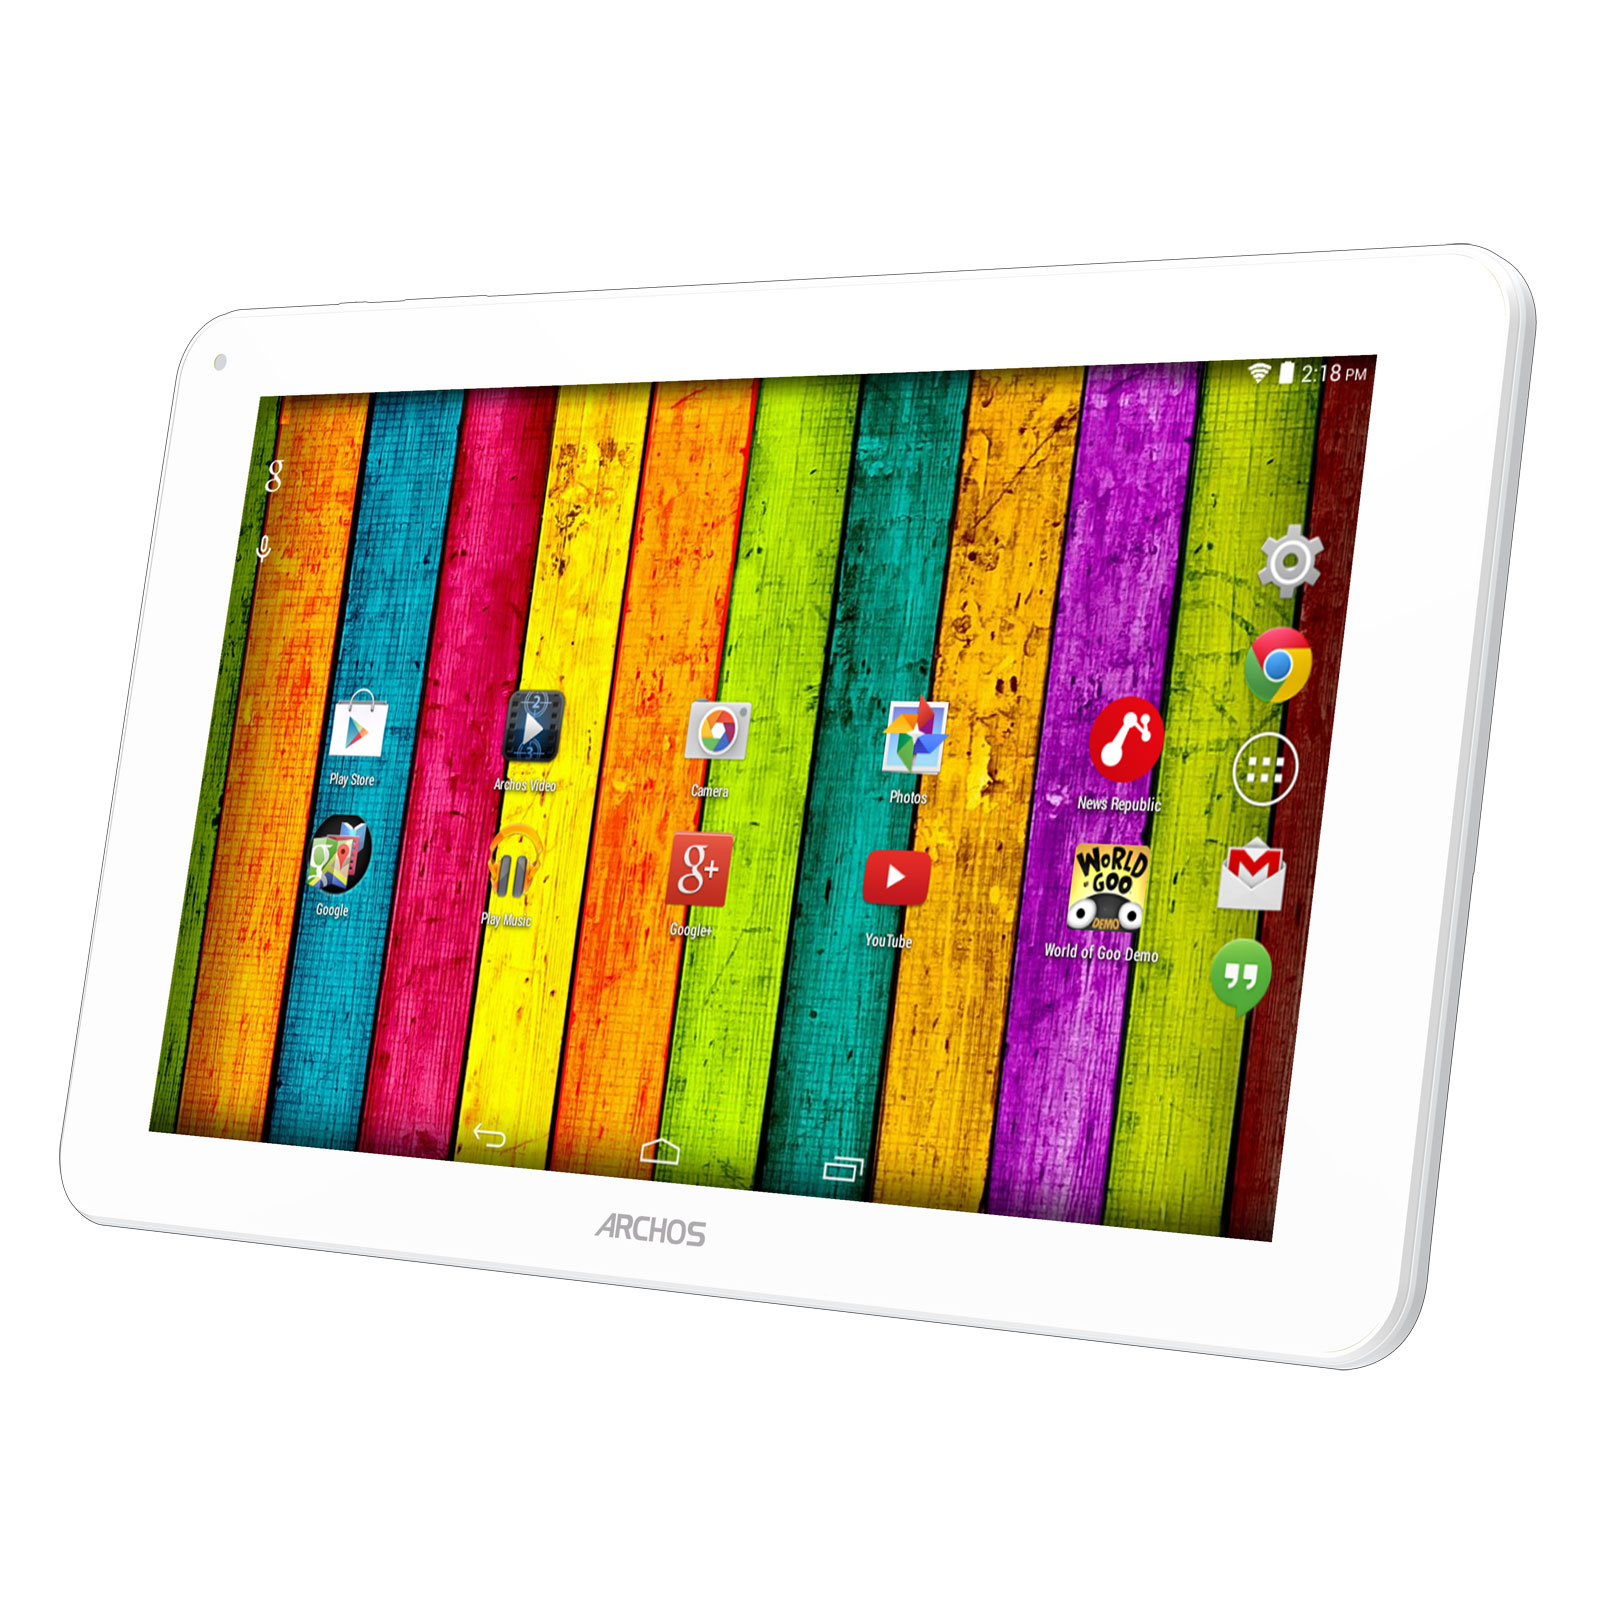 archos 101b neon 16 go tablette tactile archos sur ldlc. Black Bedroom Furniture Sets. Home Design Ideas